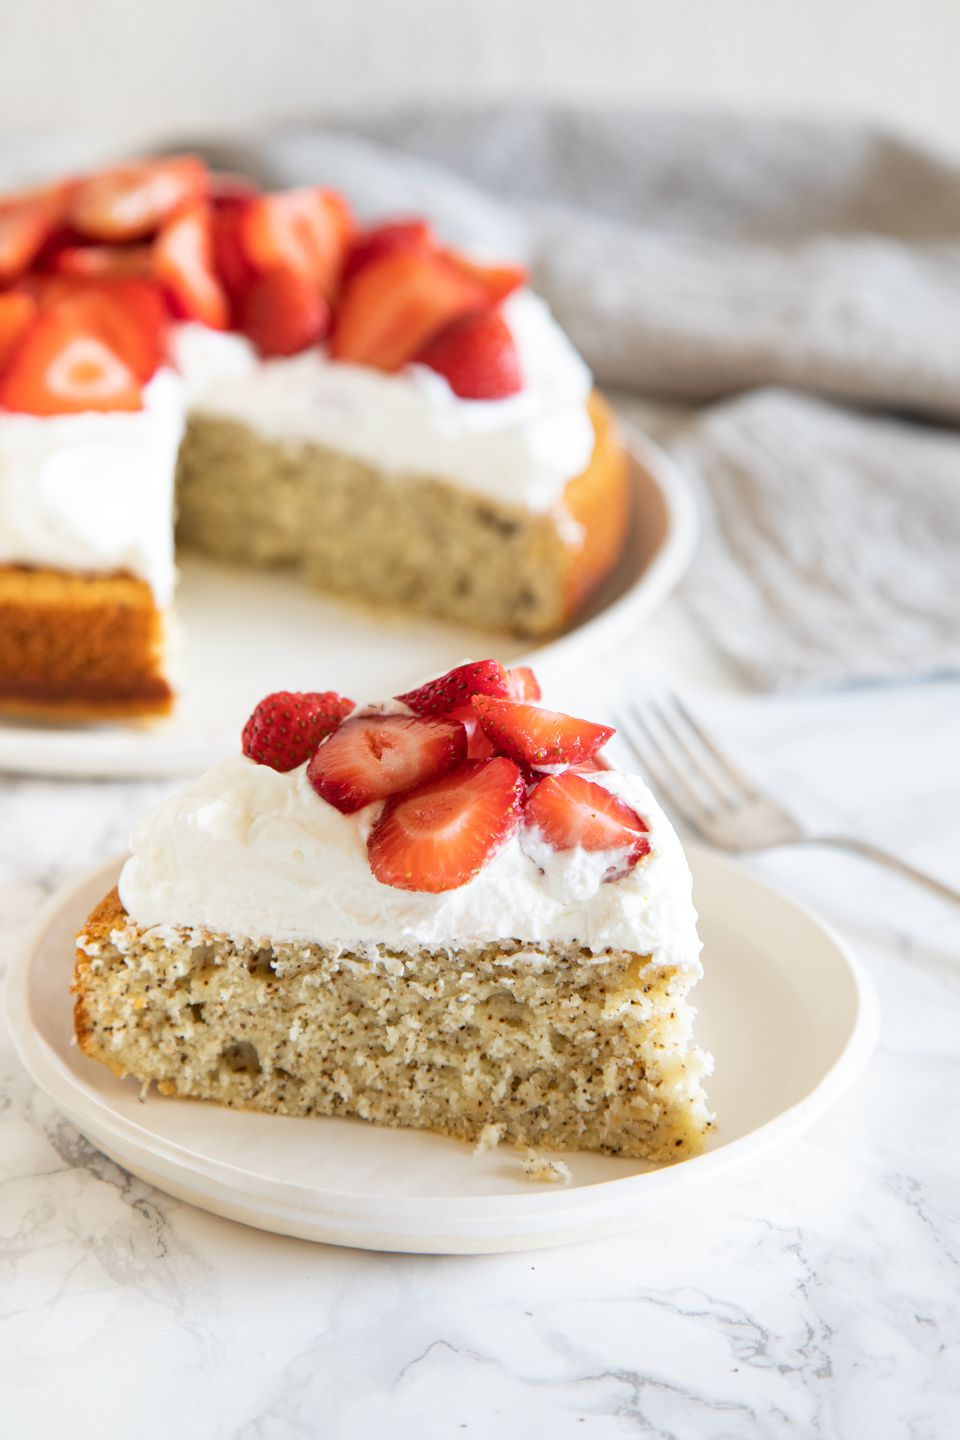 A slice of The BEST Earl Grey Yogurt Cake on a plate and topped with whipped cream and strawberries. The rest of the cake is set behind the plate.